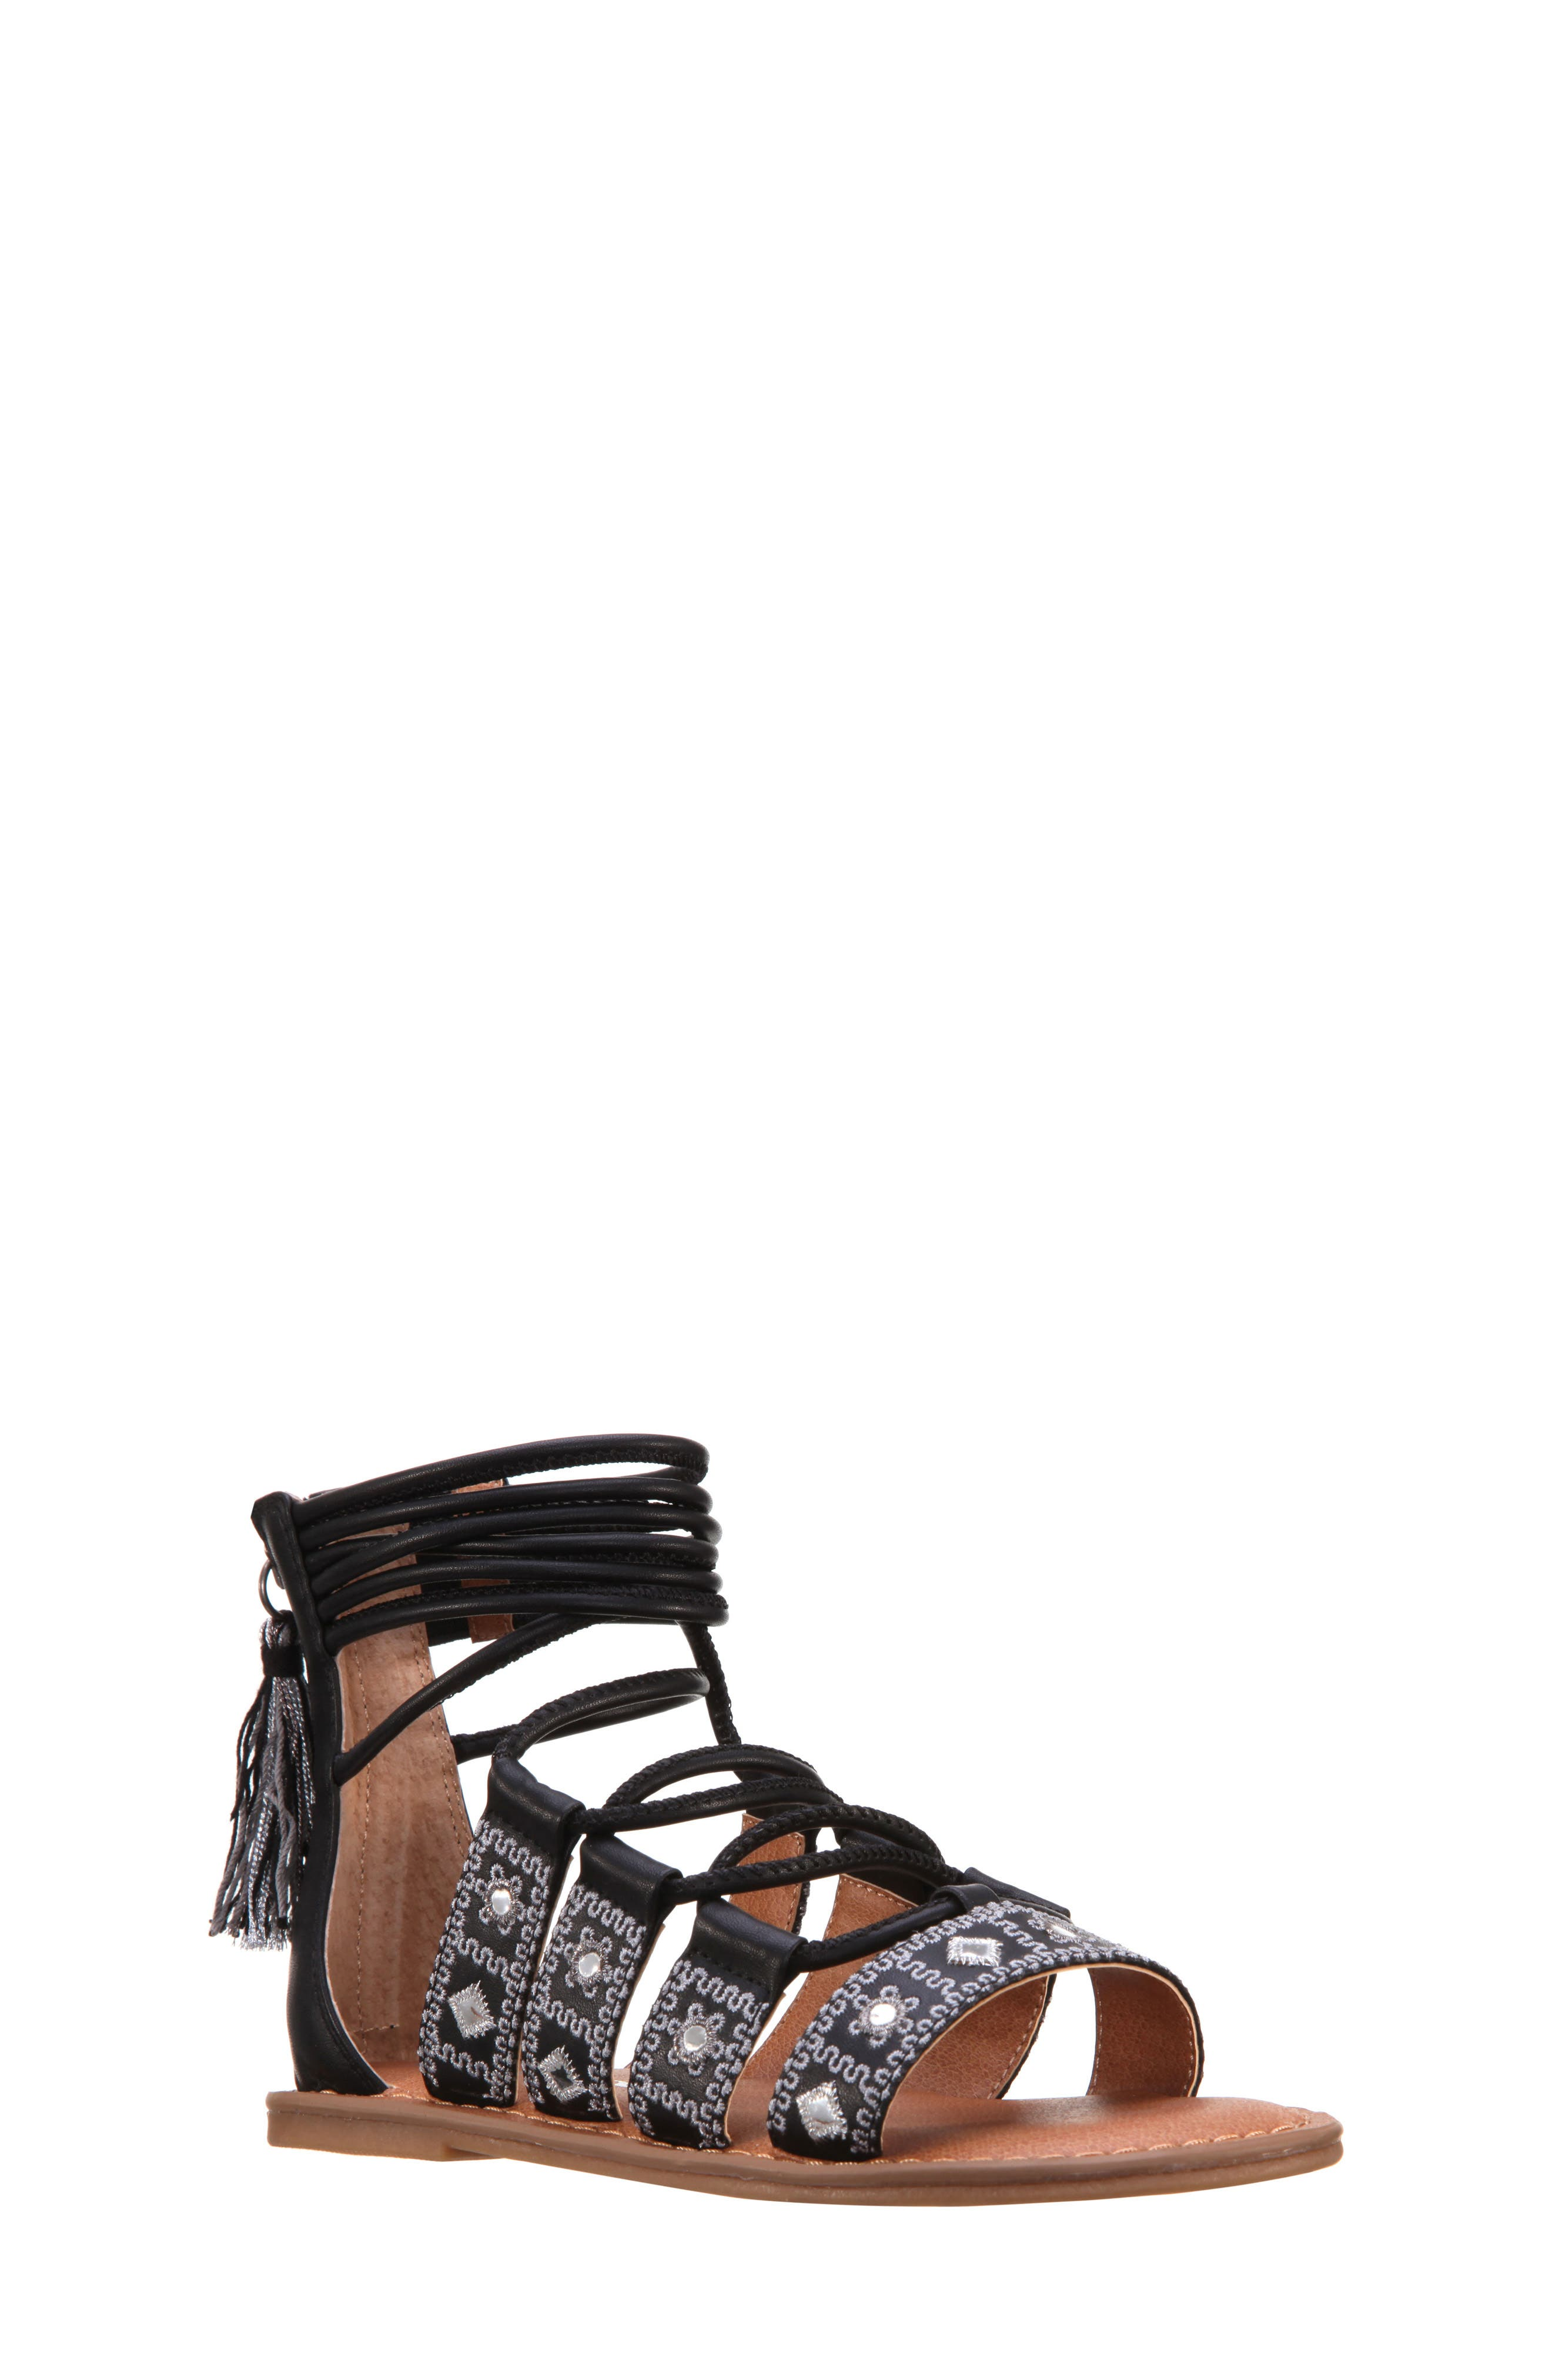 Sherryll Embellished Gladiator Sandal,                             Main thumbnail 1, color,                             009